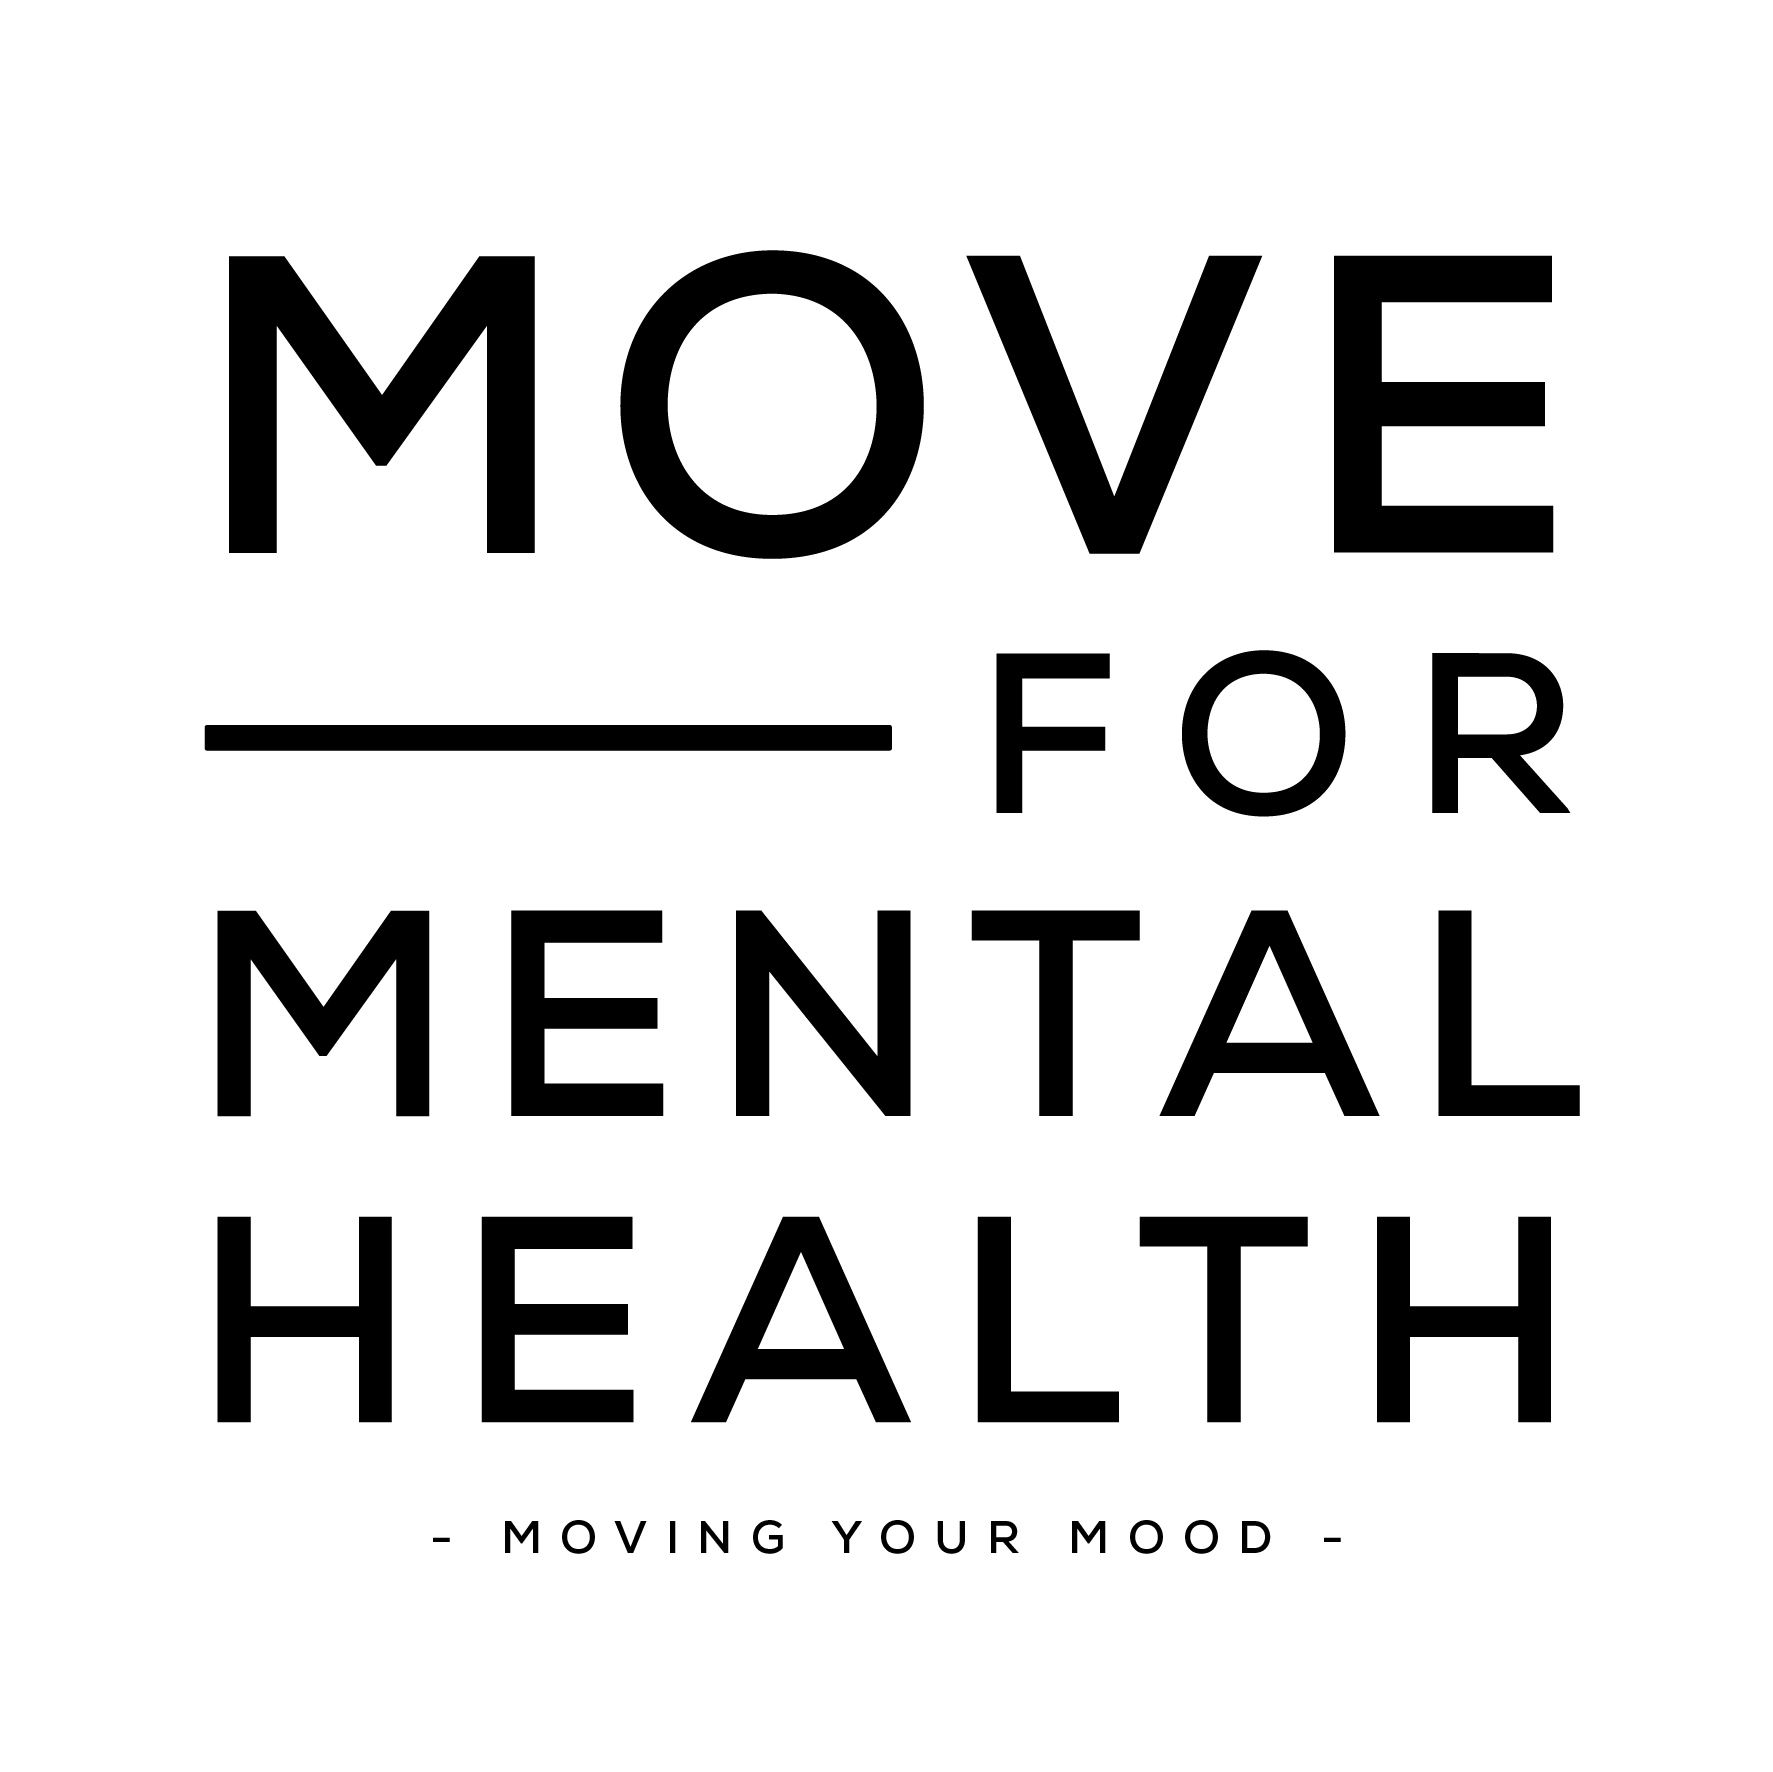 TMR_Move For Mental Health-01.jpg